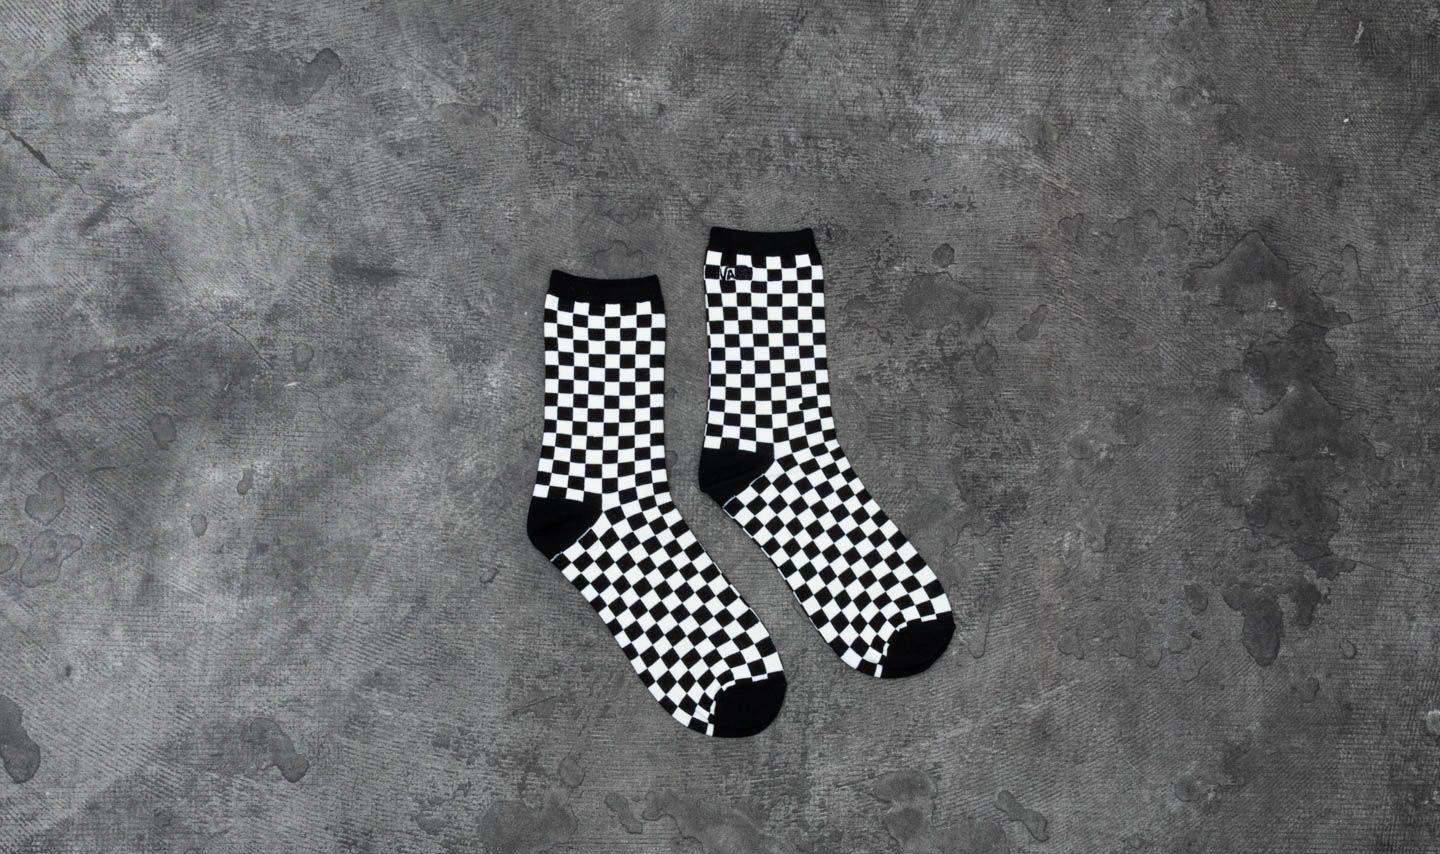 d3eb6577bda033 Vans Ticker Crew Socks Black White Checkerboard